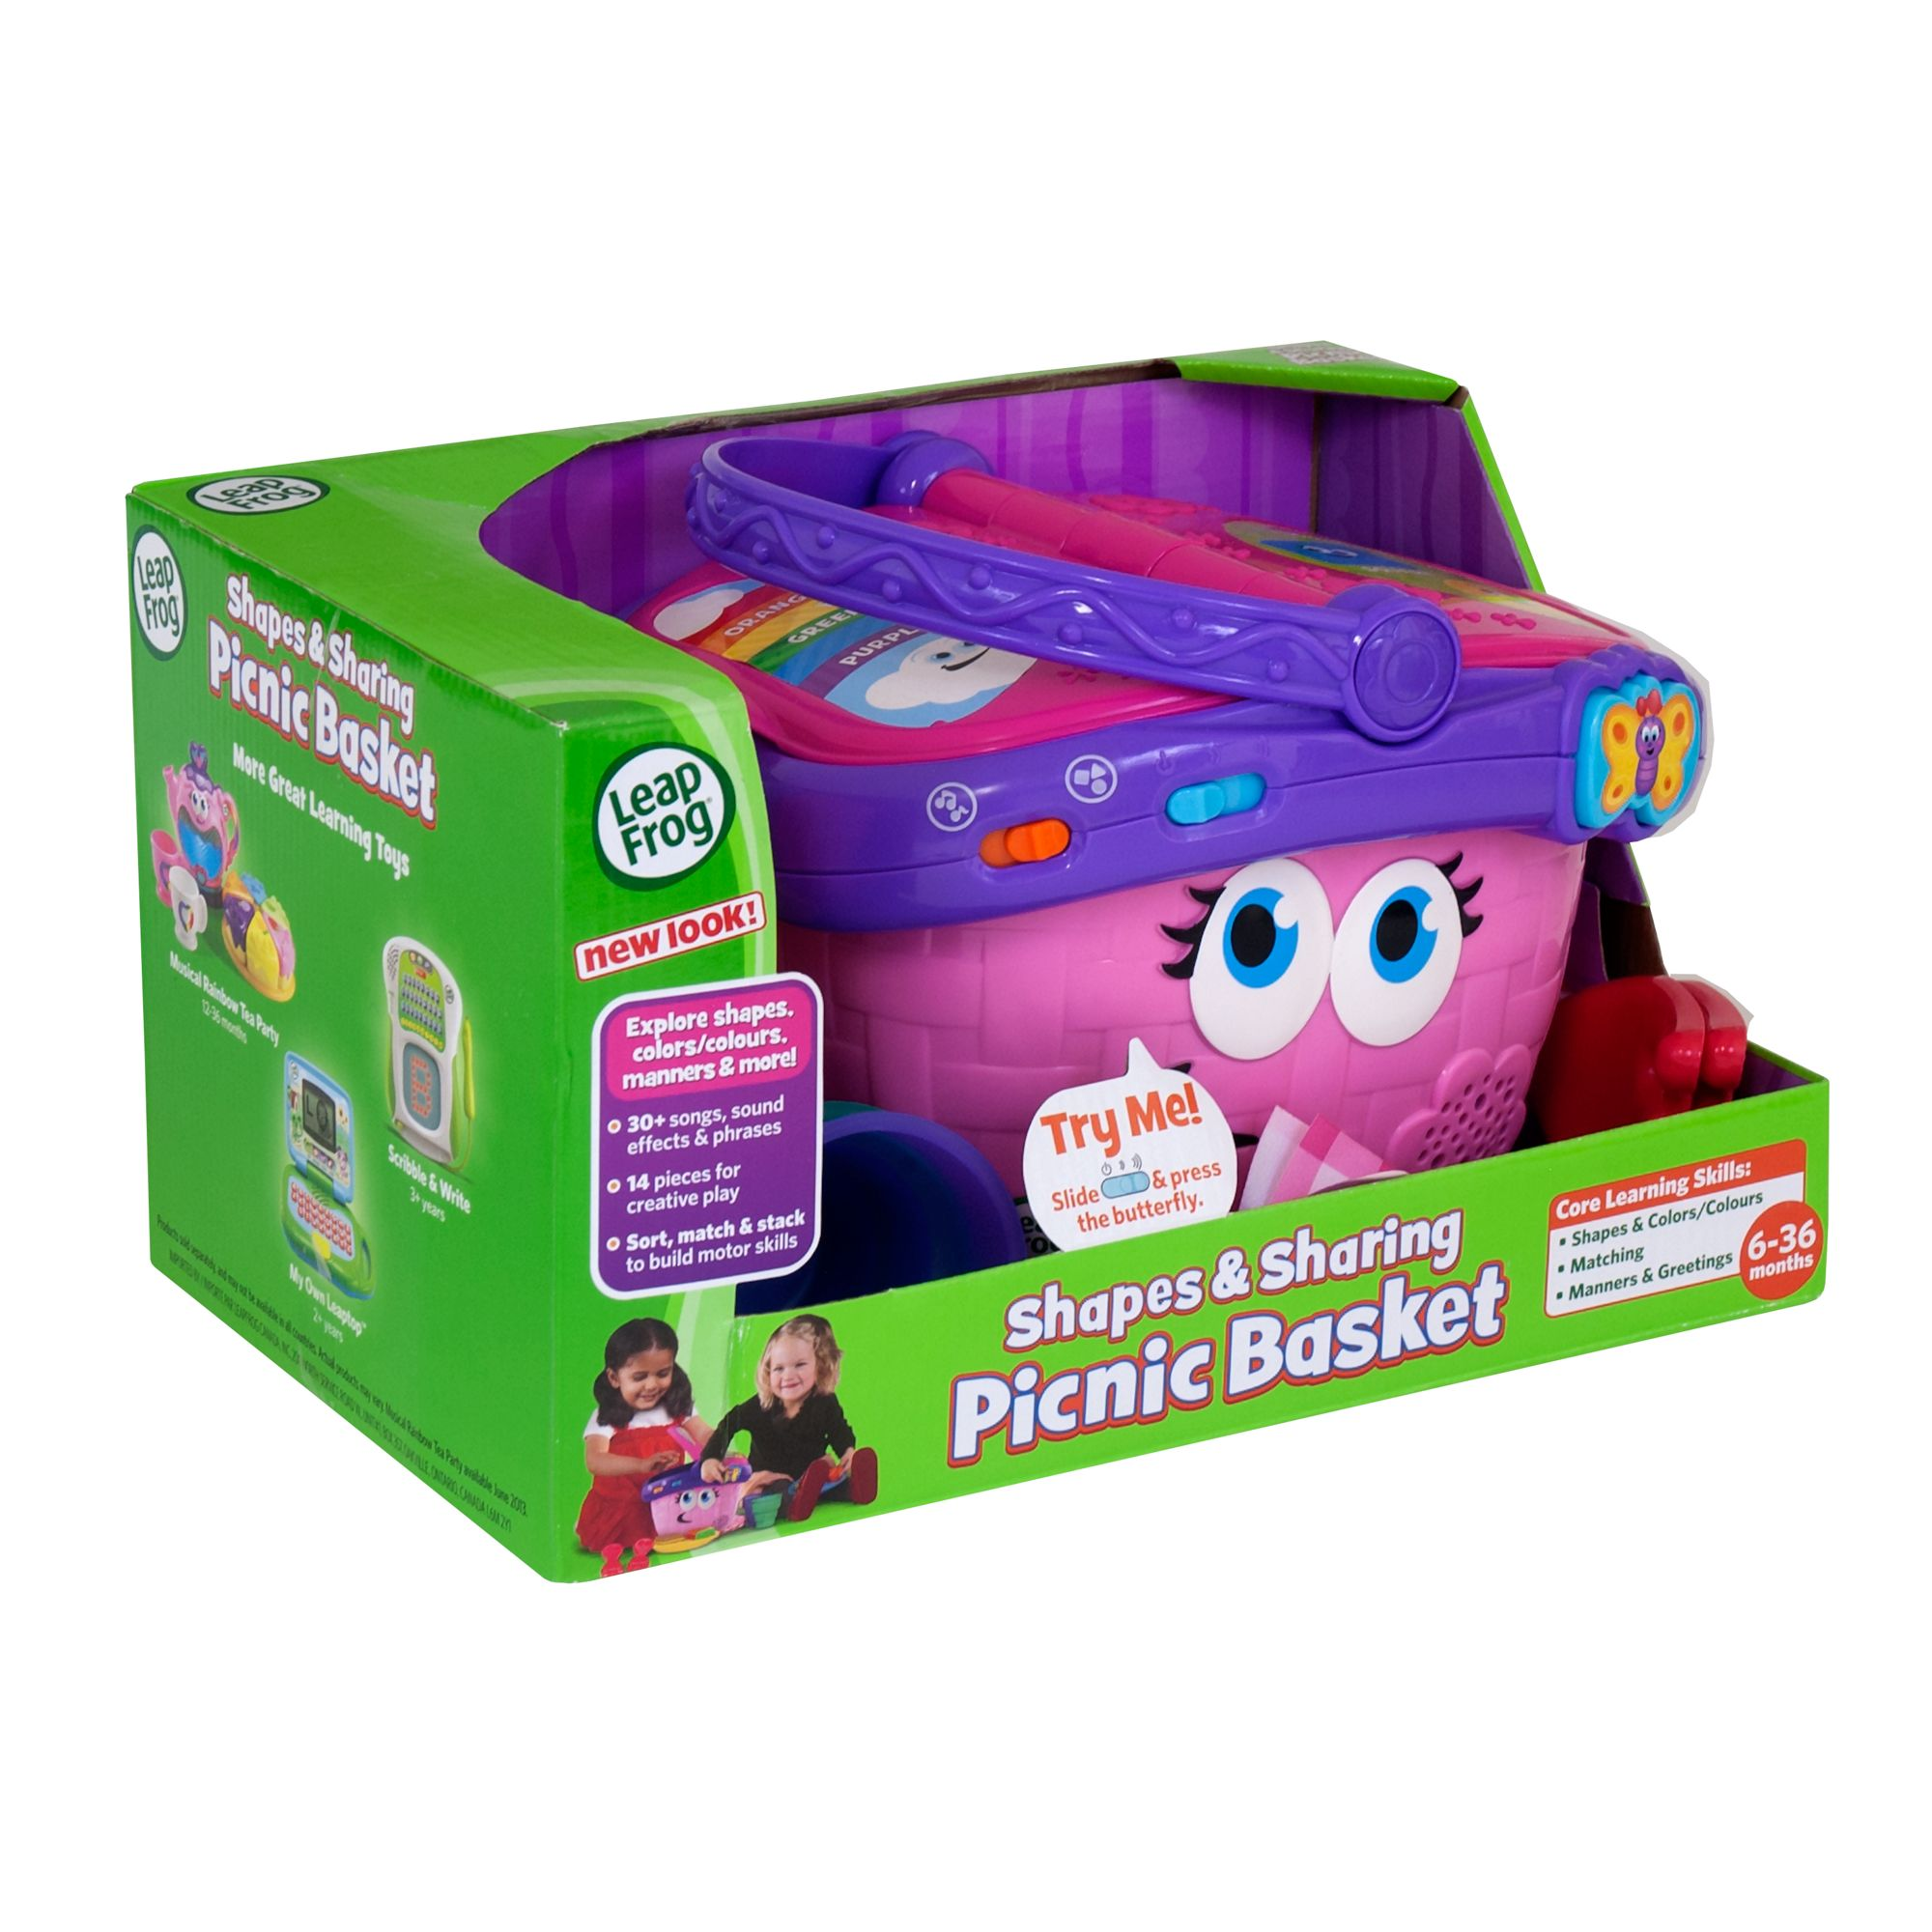 Toy Picnic Basket : New leapfrog shapes and sharing picnic basket kids